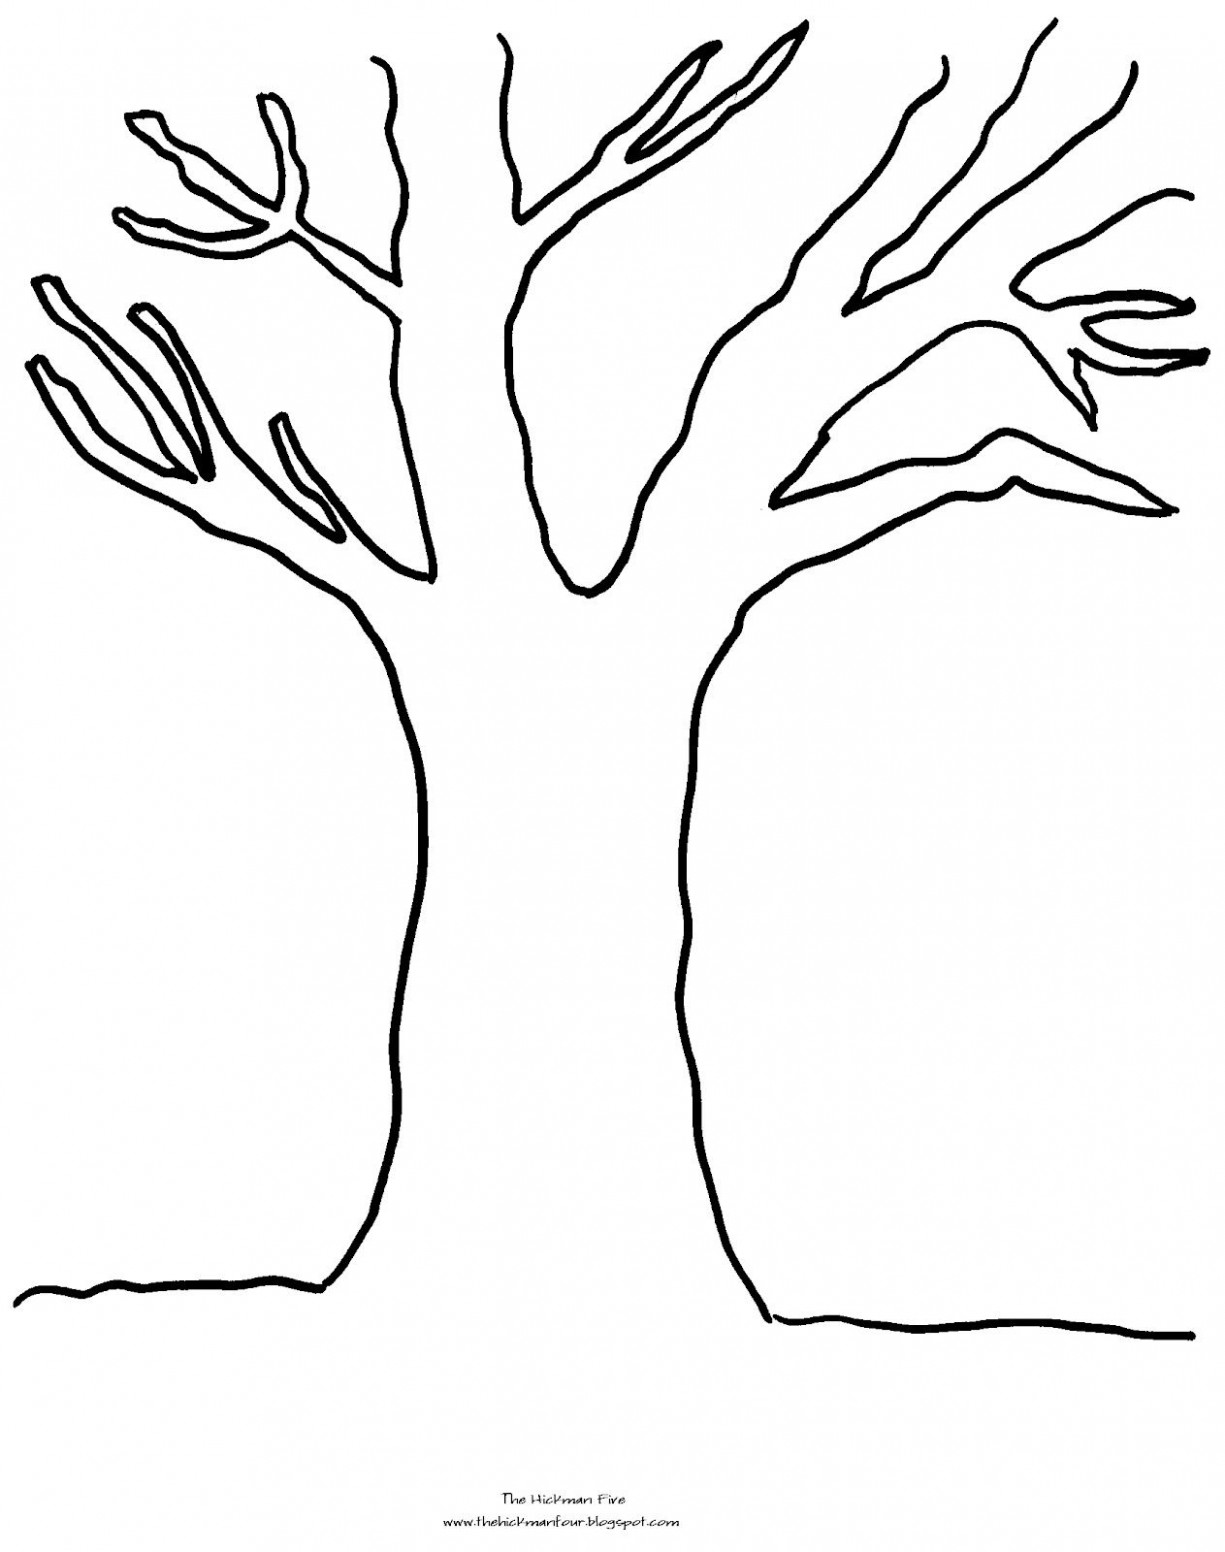 tree coloring pages with no leaves | Only Coloring Pages | Tree ..